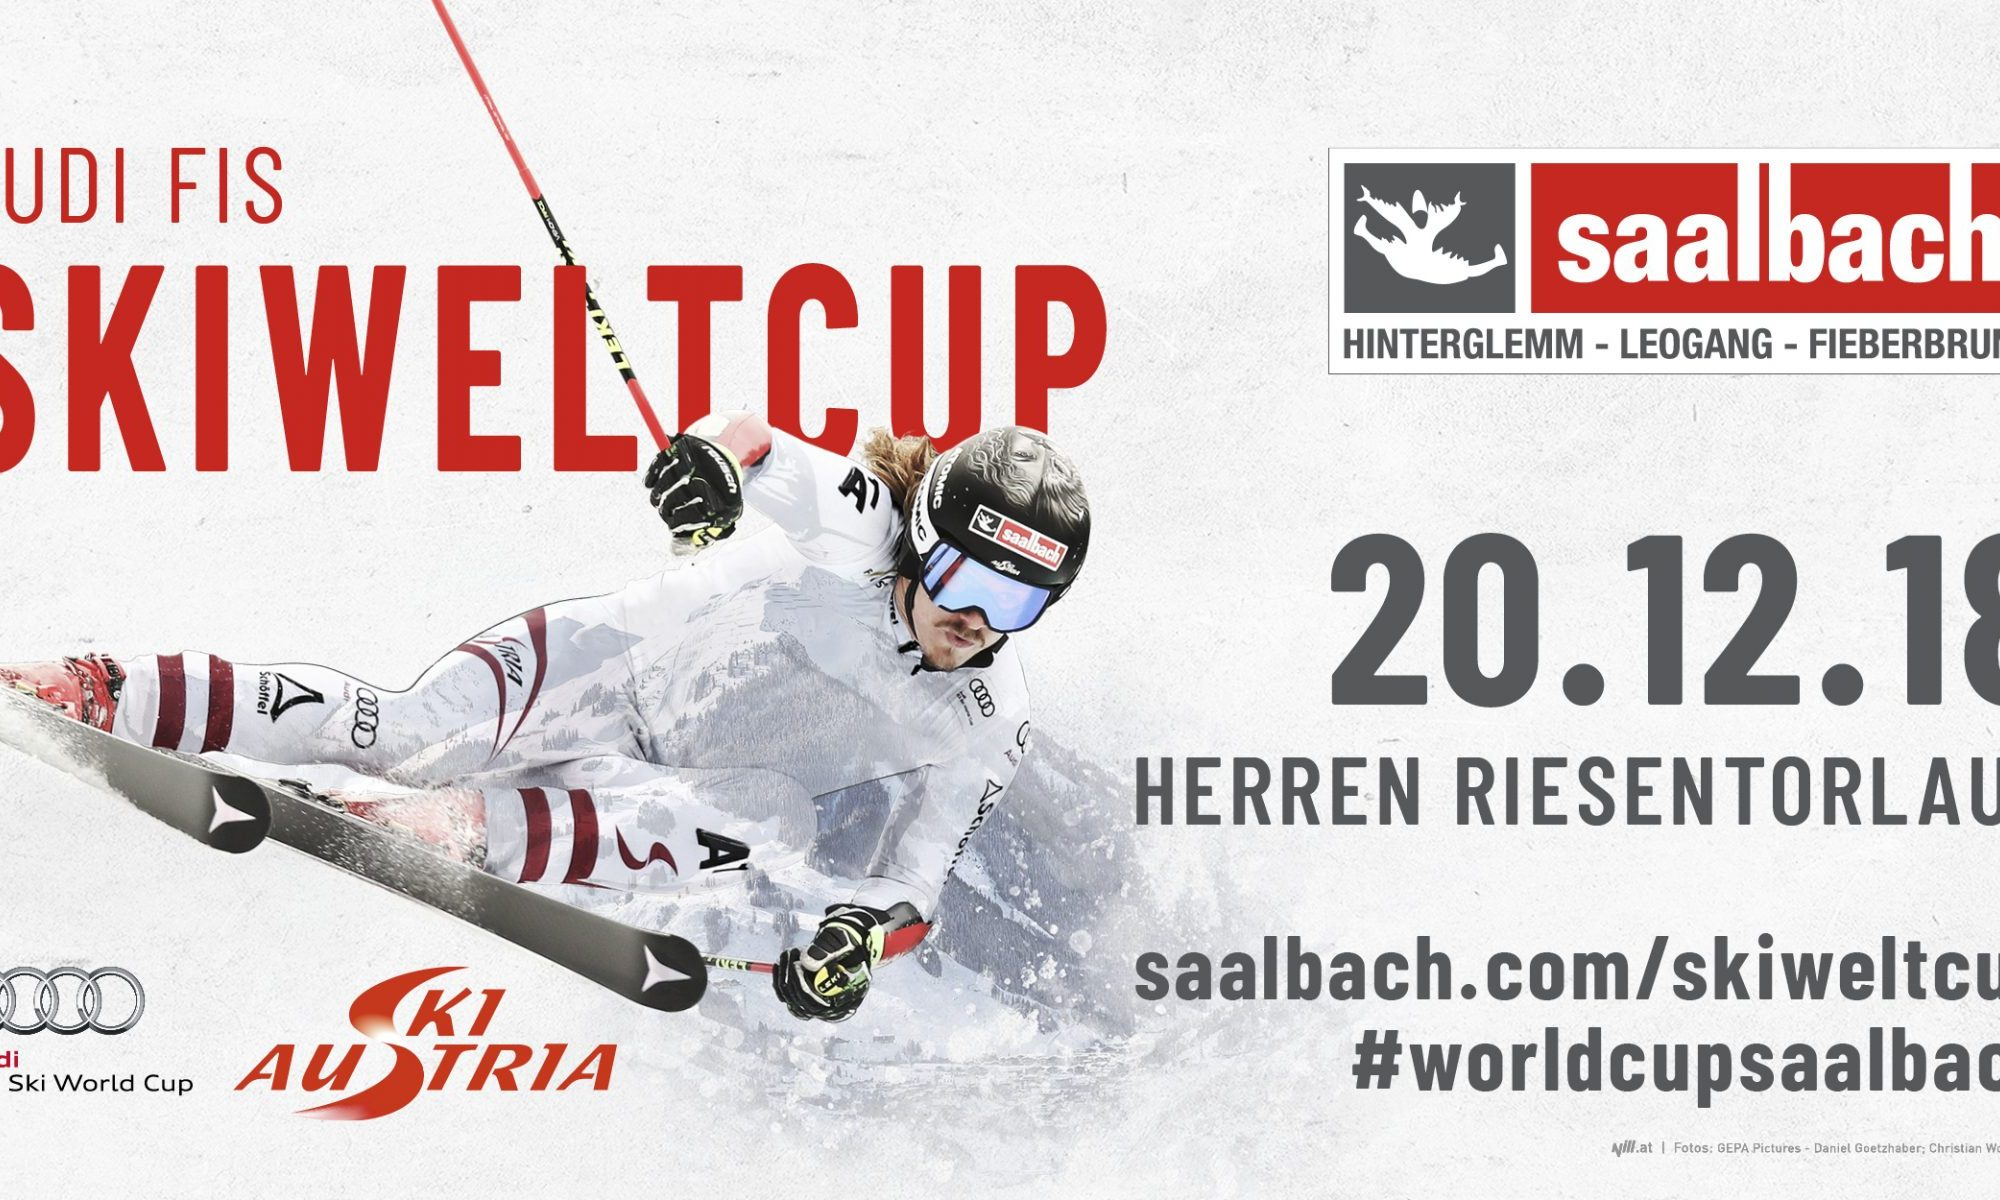 Audi FIS Ski World Cup Saalbach. Ski World Cup: Saalbach is in the Starting Gates. Copyright: © nill.at; GEPA Pictures - Daniel Goetzhaber; Christian Wöckinger.